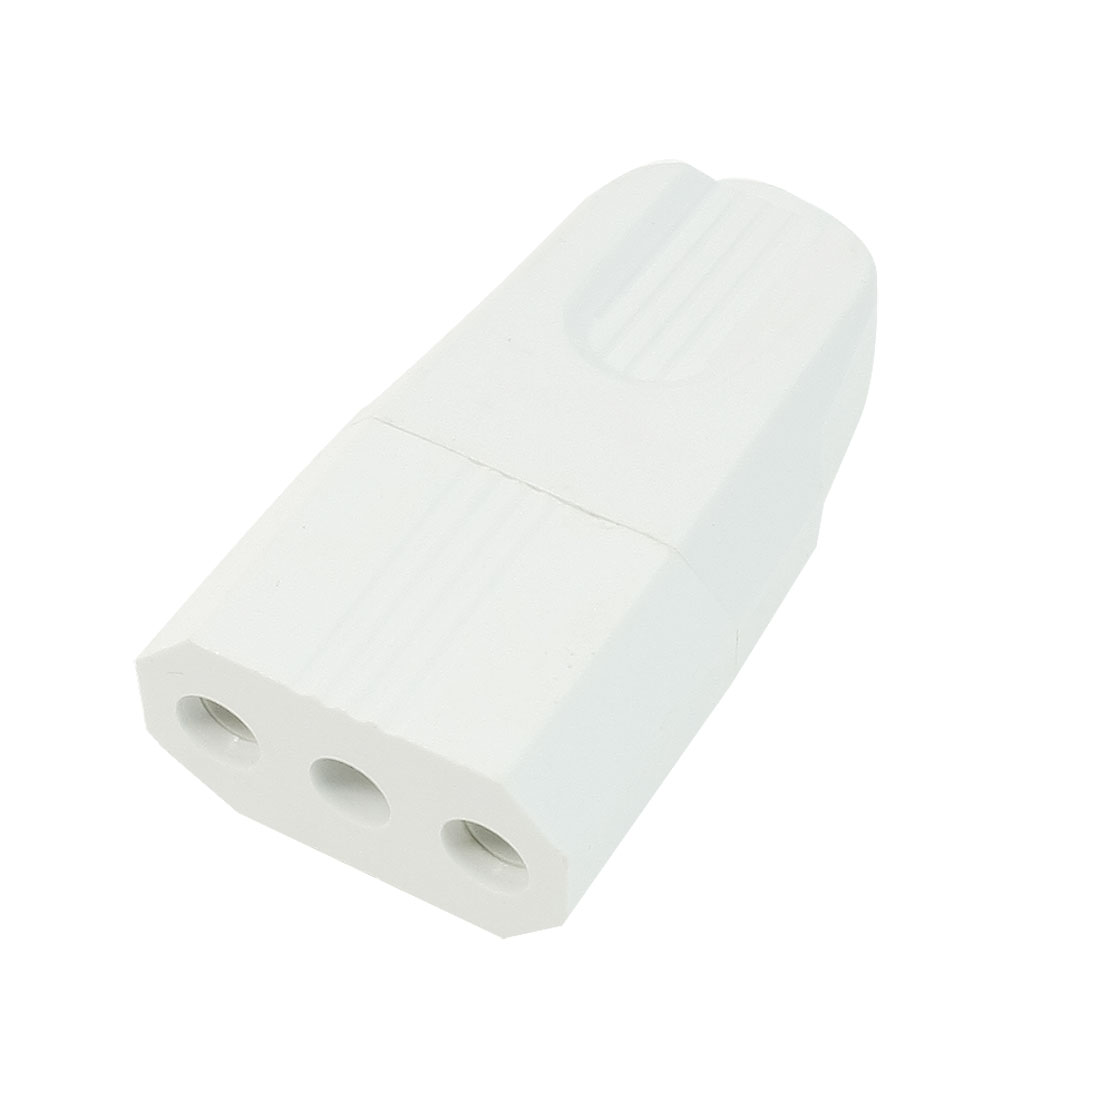 AC 250V 2.5A EU 2 Round Pin Power Socket Adapter Connector